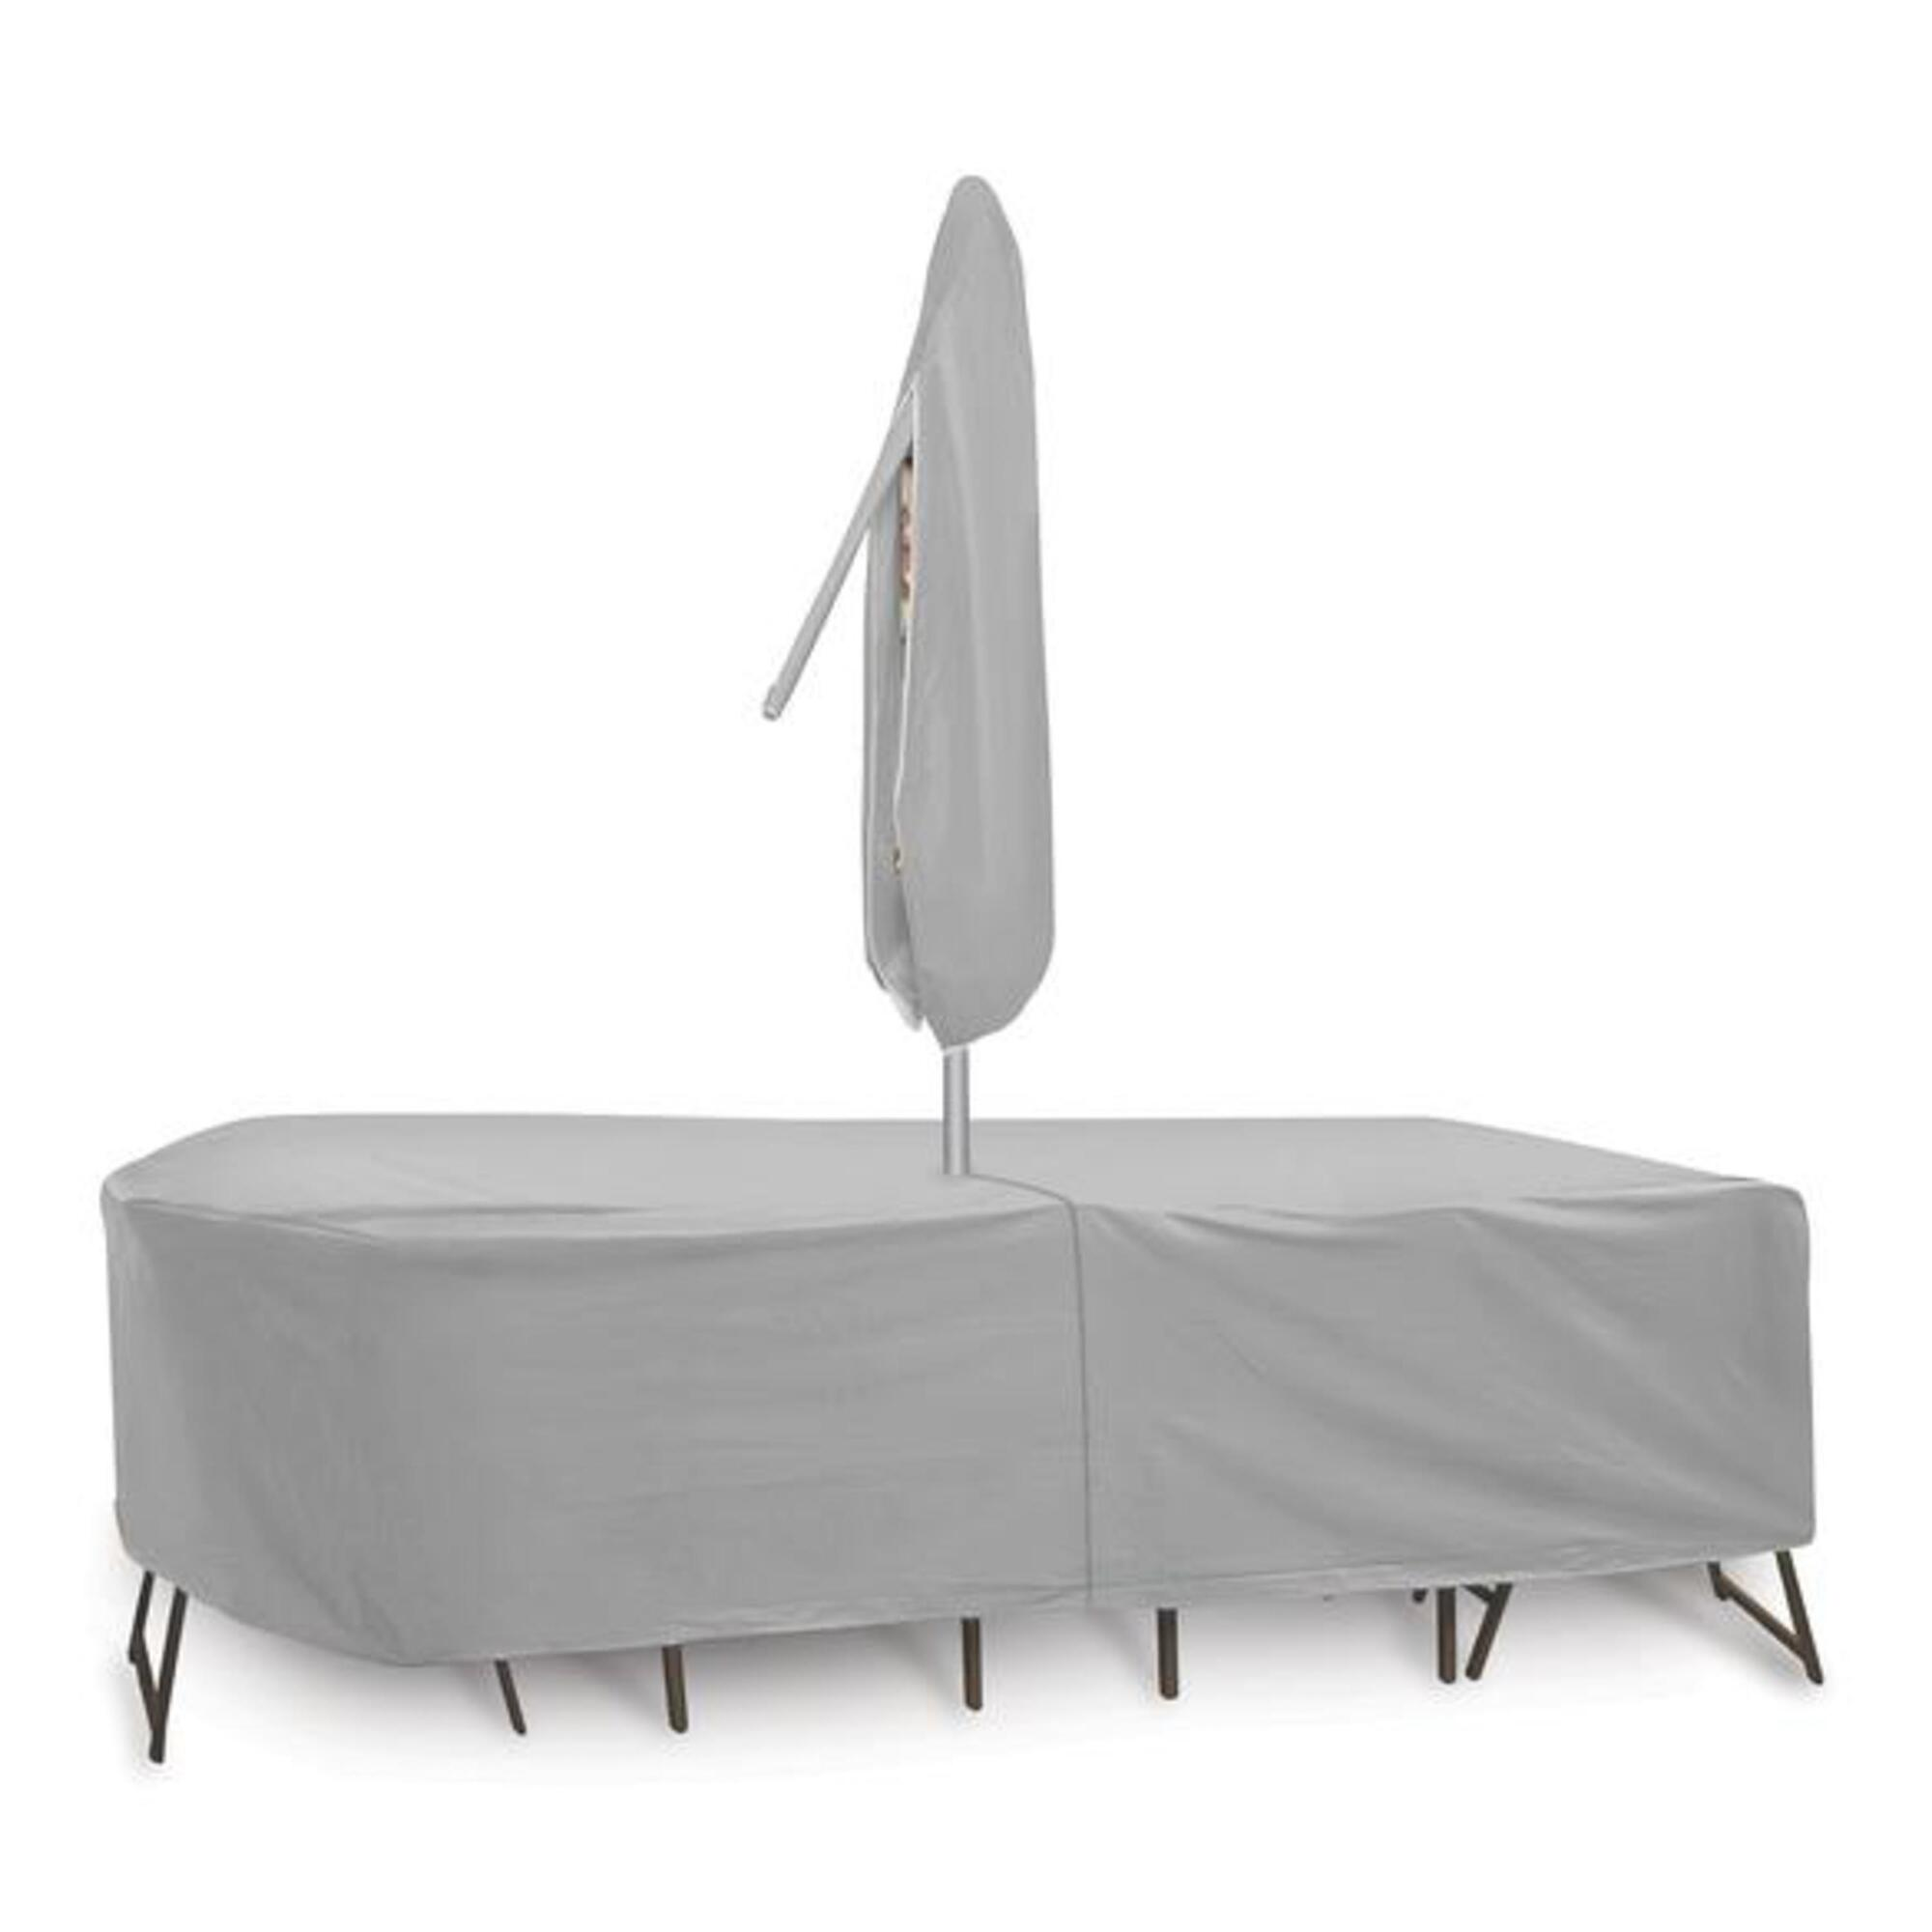 Extra large outdoor table set cover with umbrella hole for Large patio umbrella covers